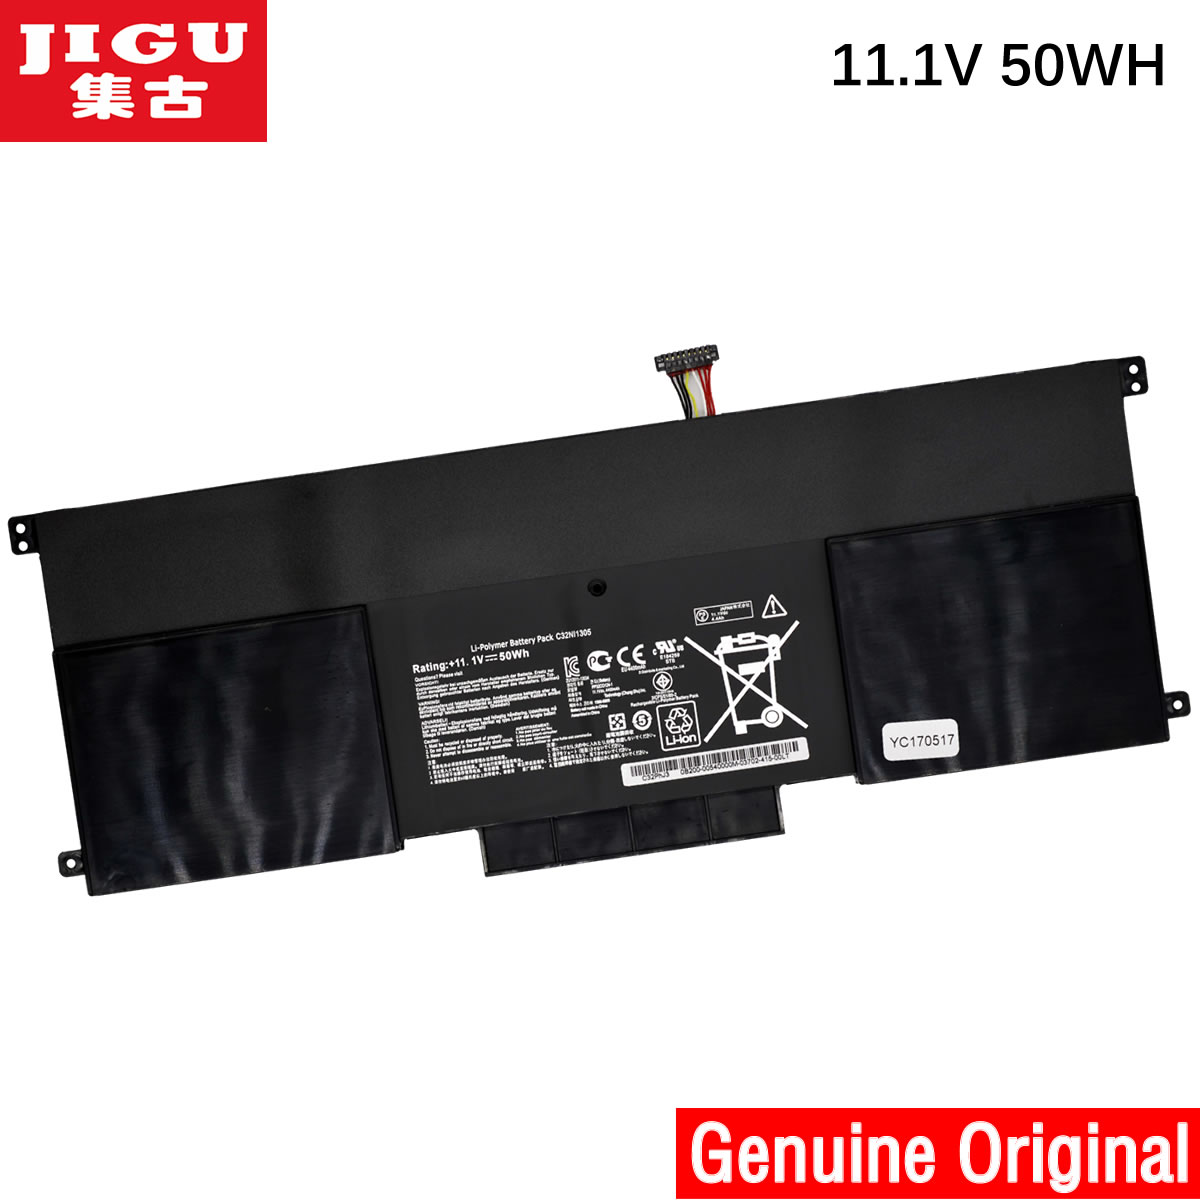 все цены на JIGU laptop battery FOR ASUS C32N1305 C32NI305 UX301LA FOR Zenbook UX301L UX301LA UX301LA4500 онлайн